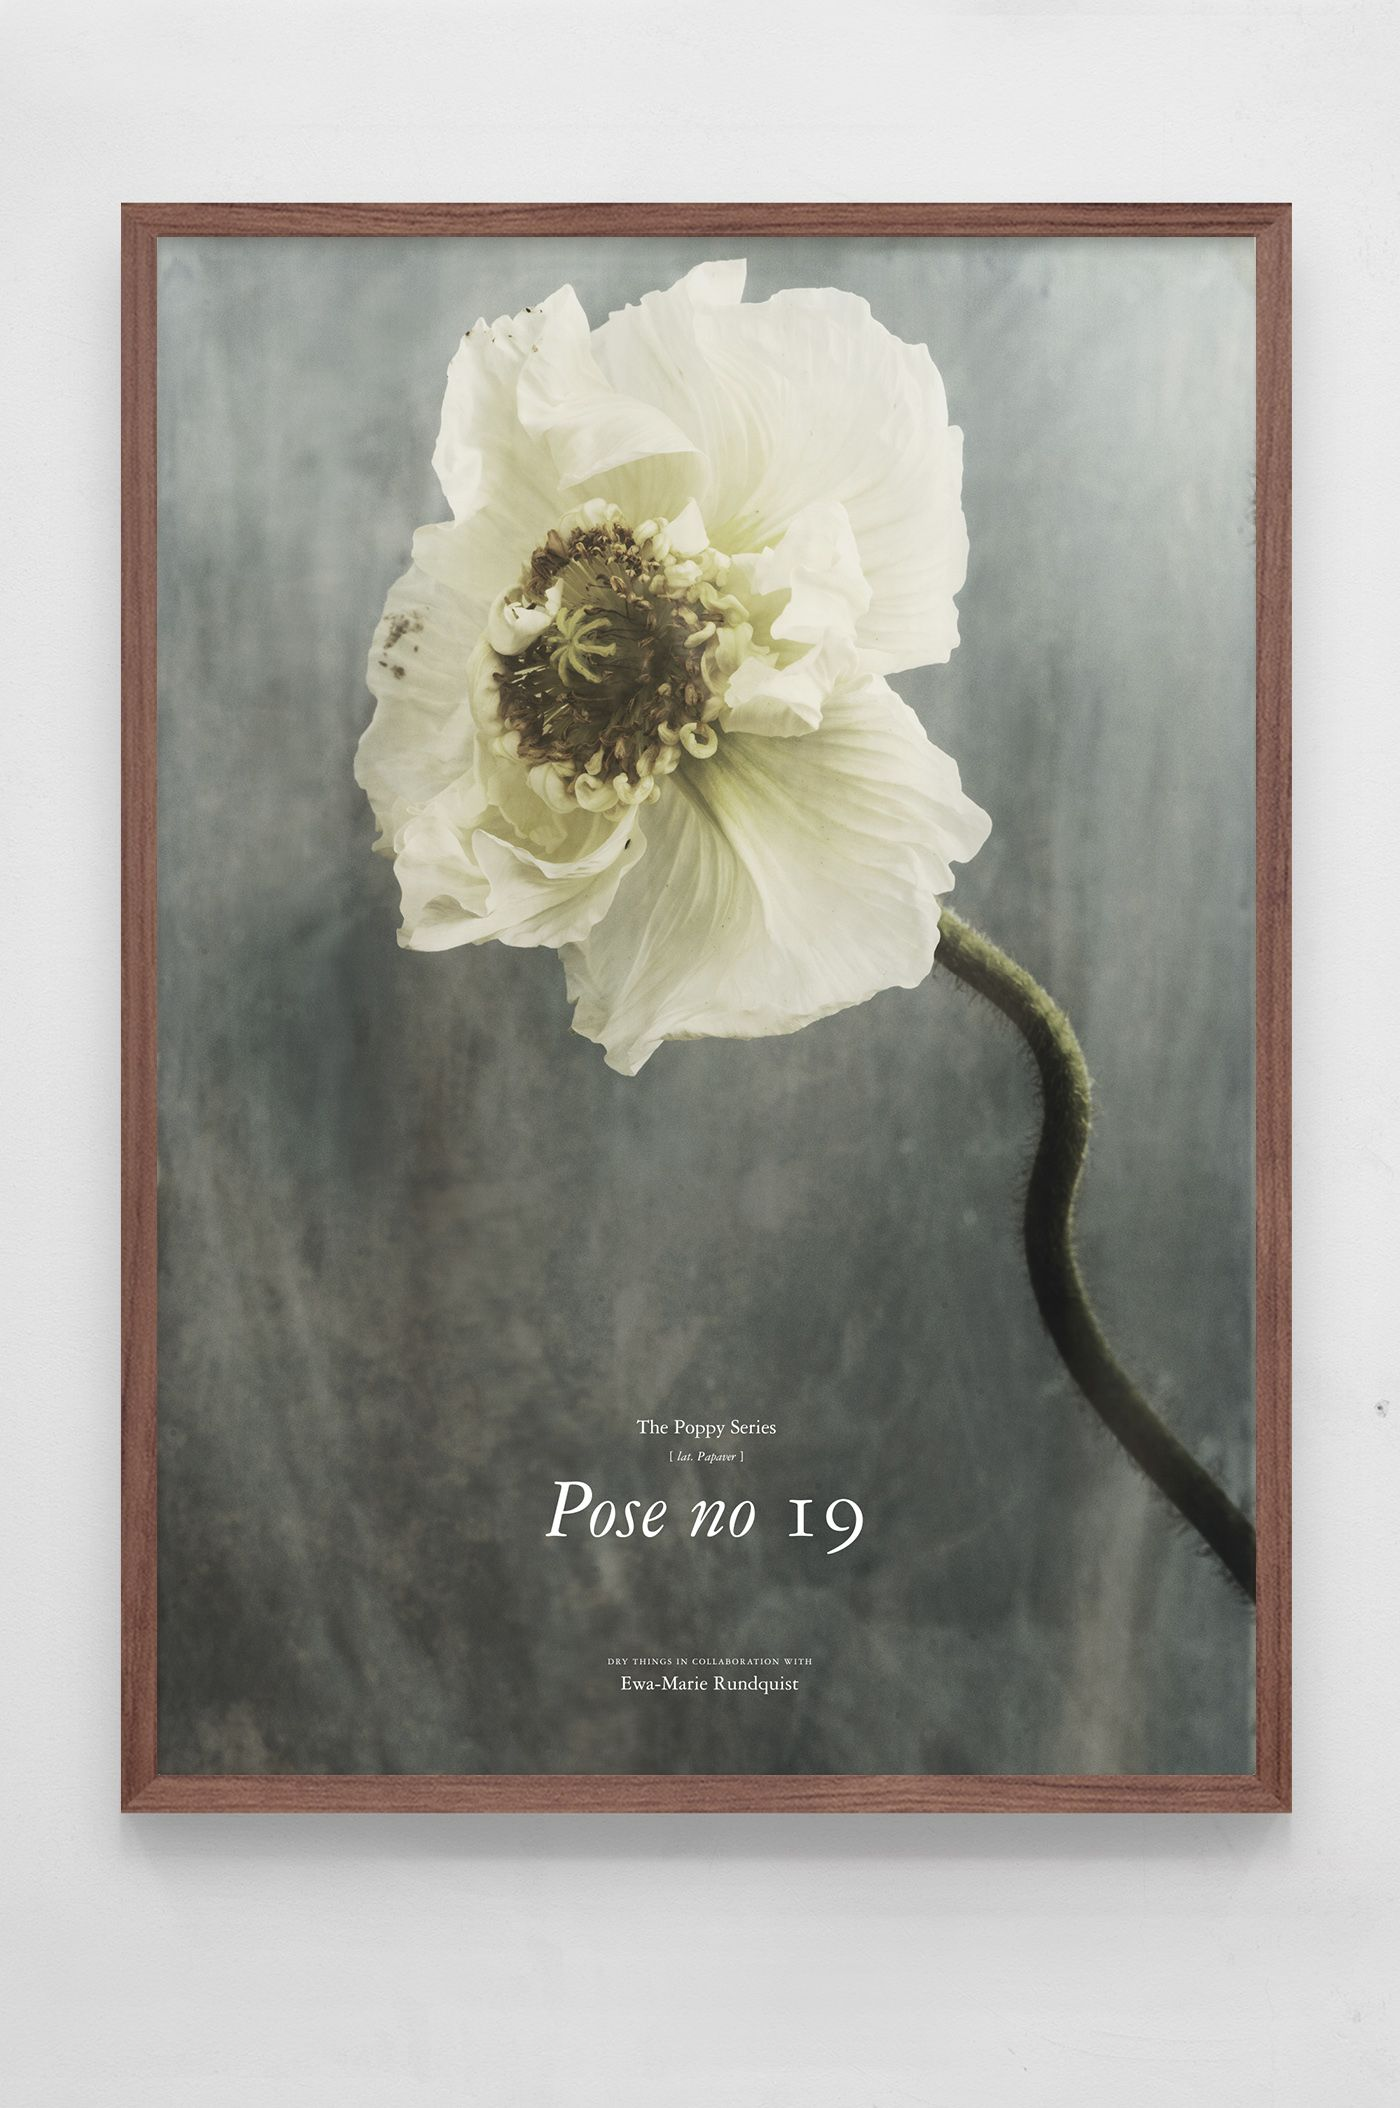 Poppies Pose No 19 By Swedish Designers Dry Thingssee More At Www